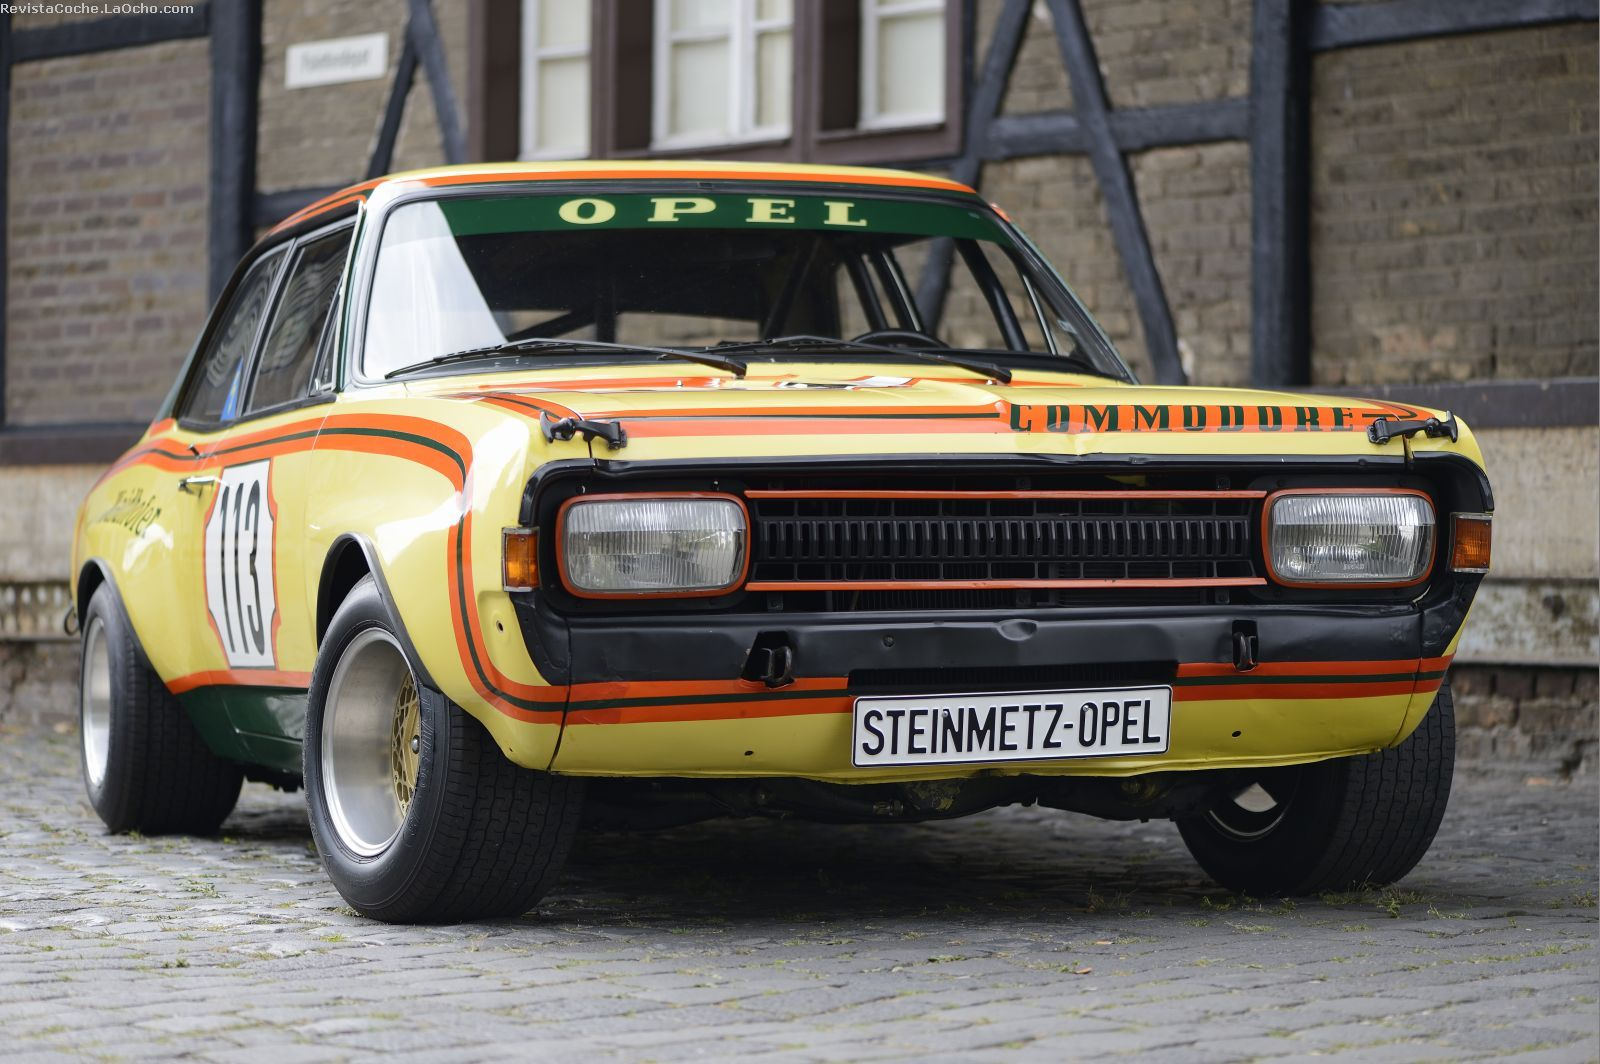 Opel Commodore A Race Car Classic Cars Pinterest Cars And